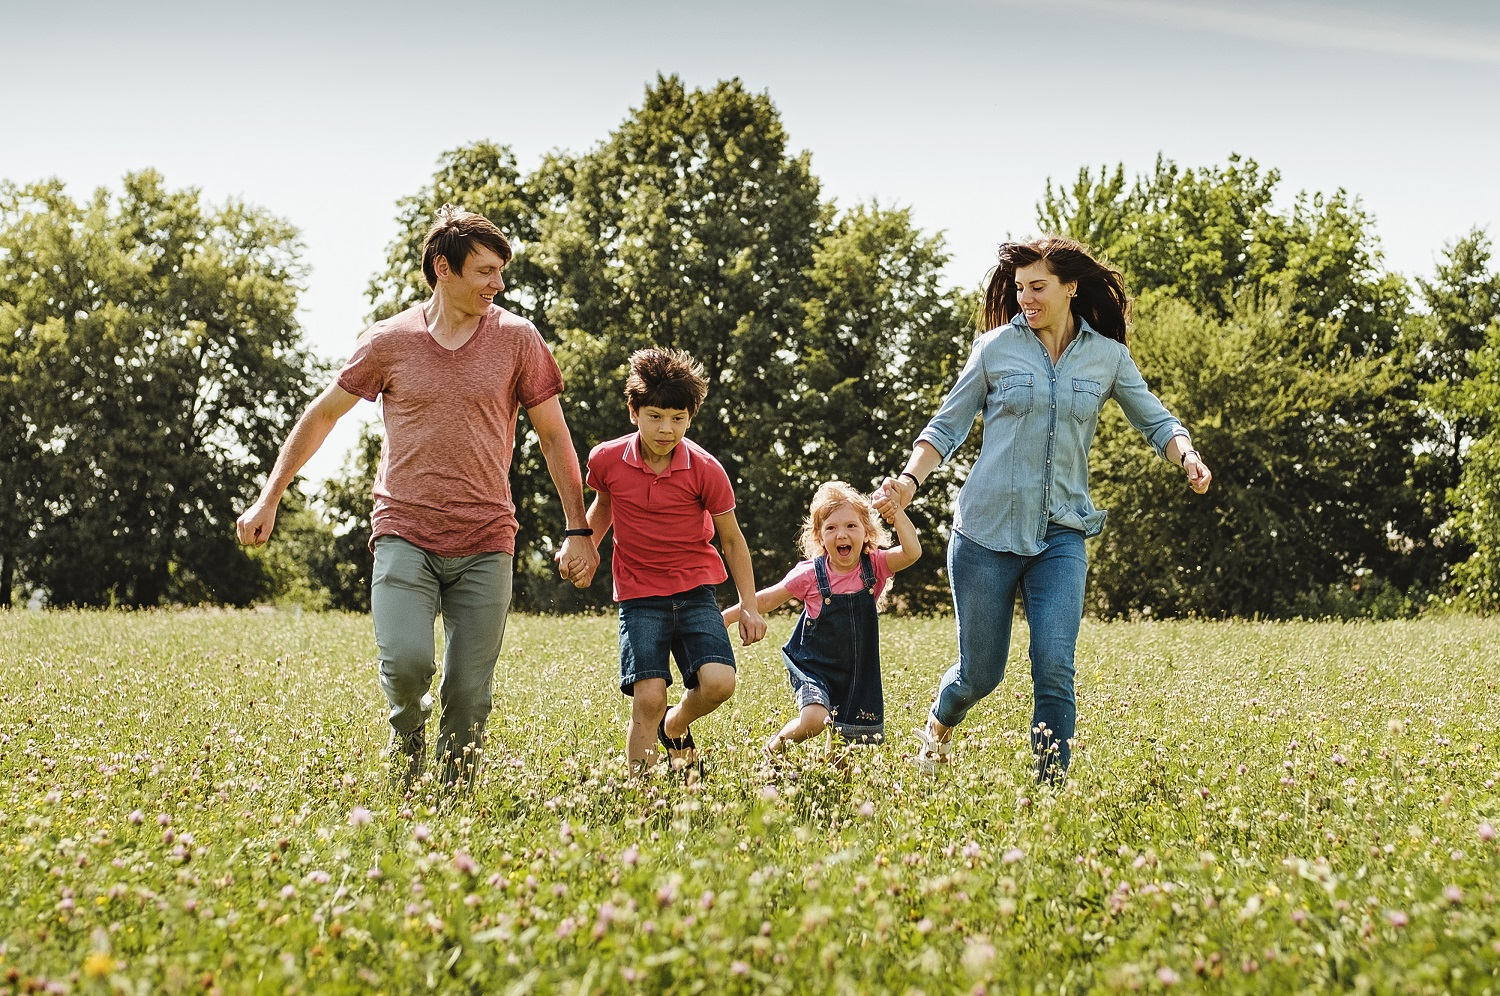 Young family with kids running hand in hand through a field or wildflowers in spring or summer approaching the camera in a healthy outdoor lifestyle concept